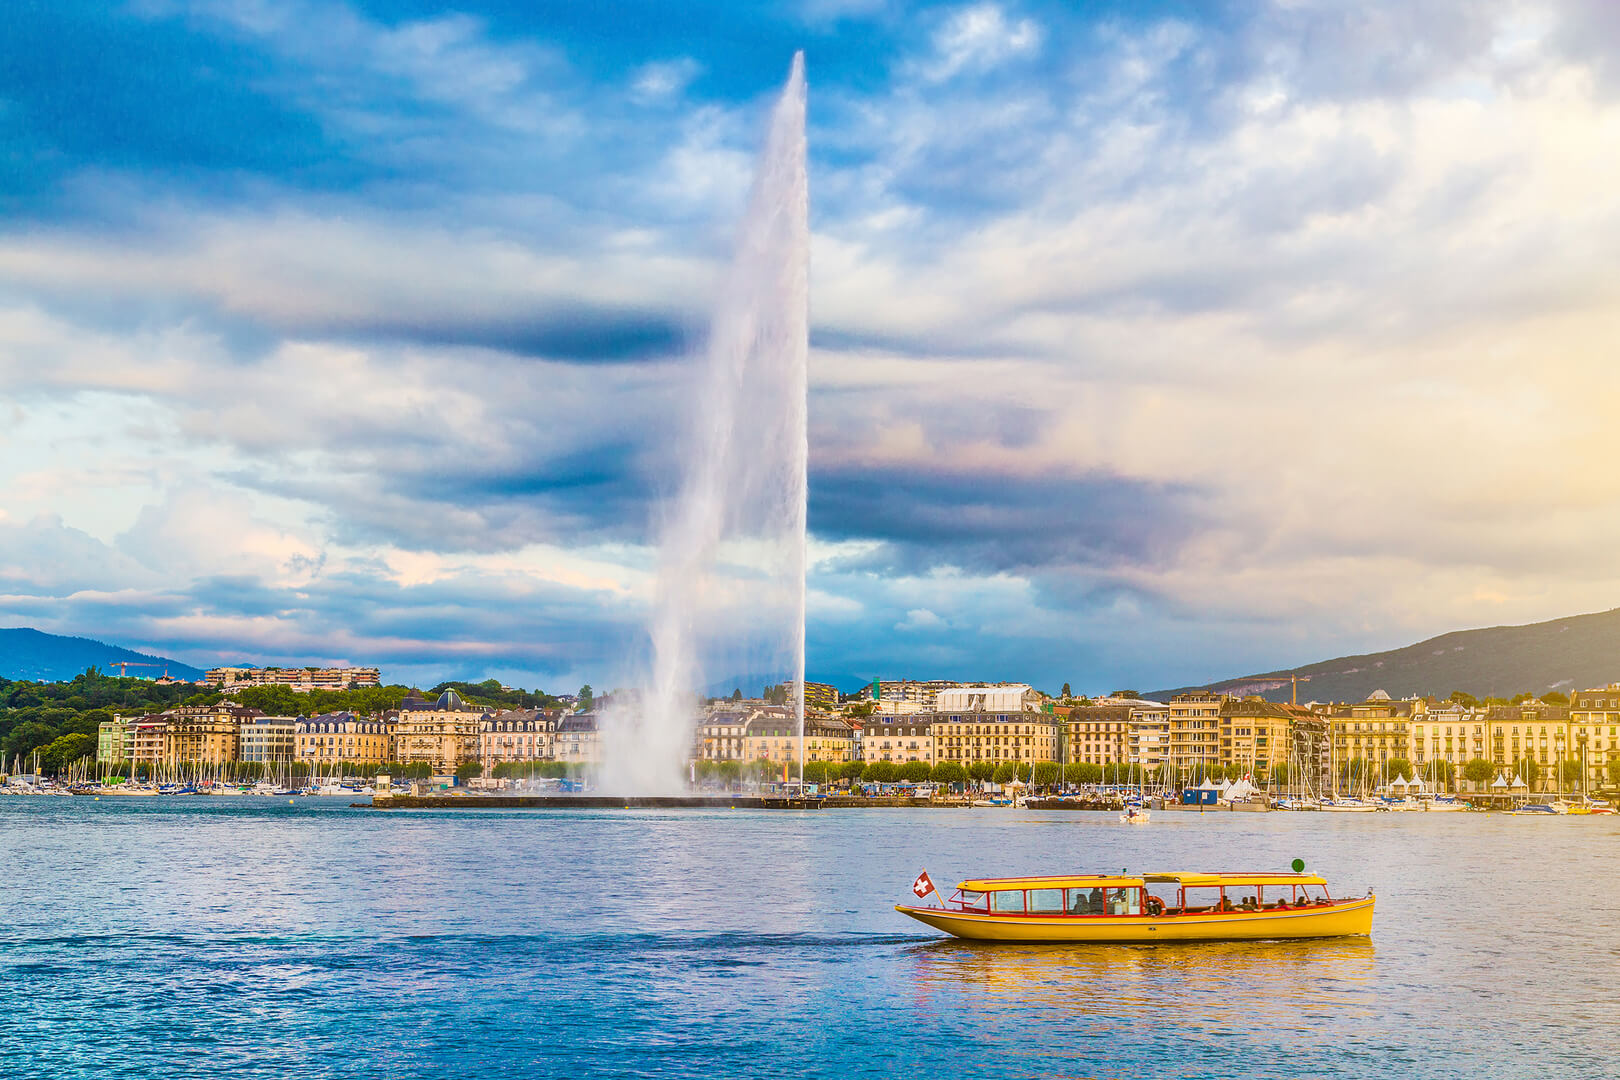 Panoramic view of Geneva skyline with famous Jet d'Eau fountain and traditional boat at harbor district in beautiful evening light at sunset, Canton of Geneva, Switzerland